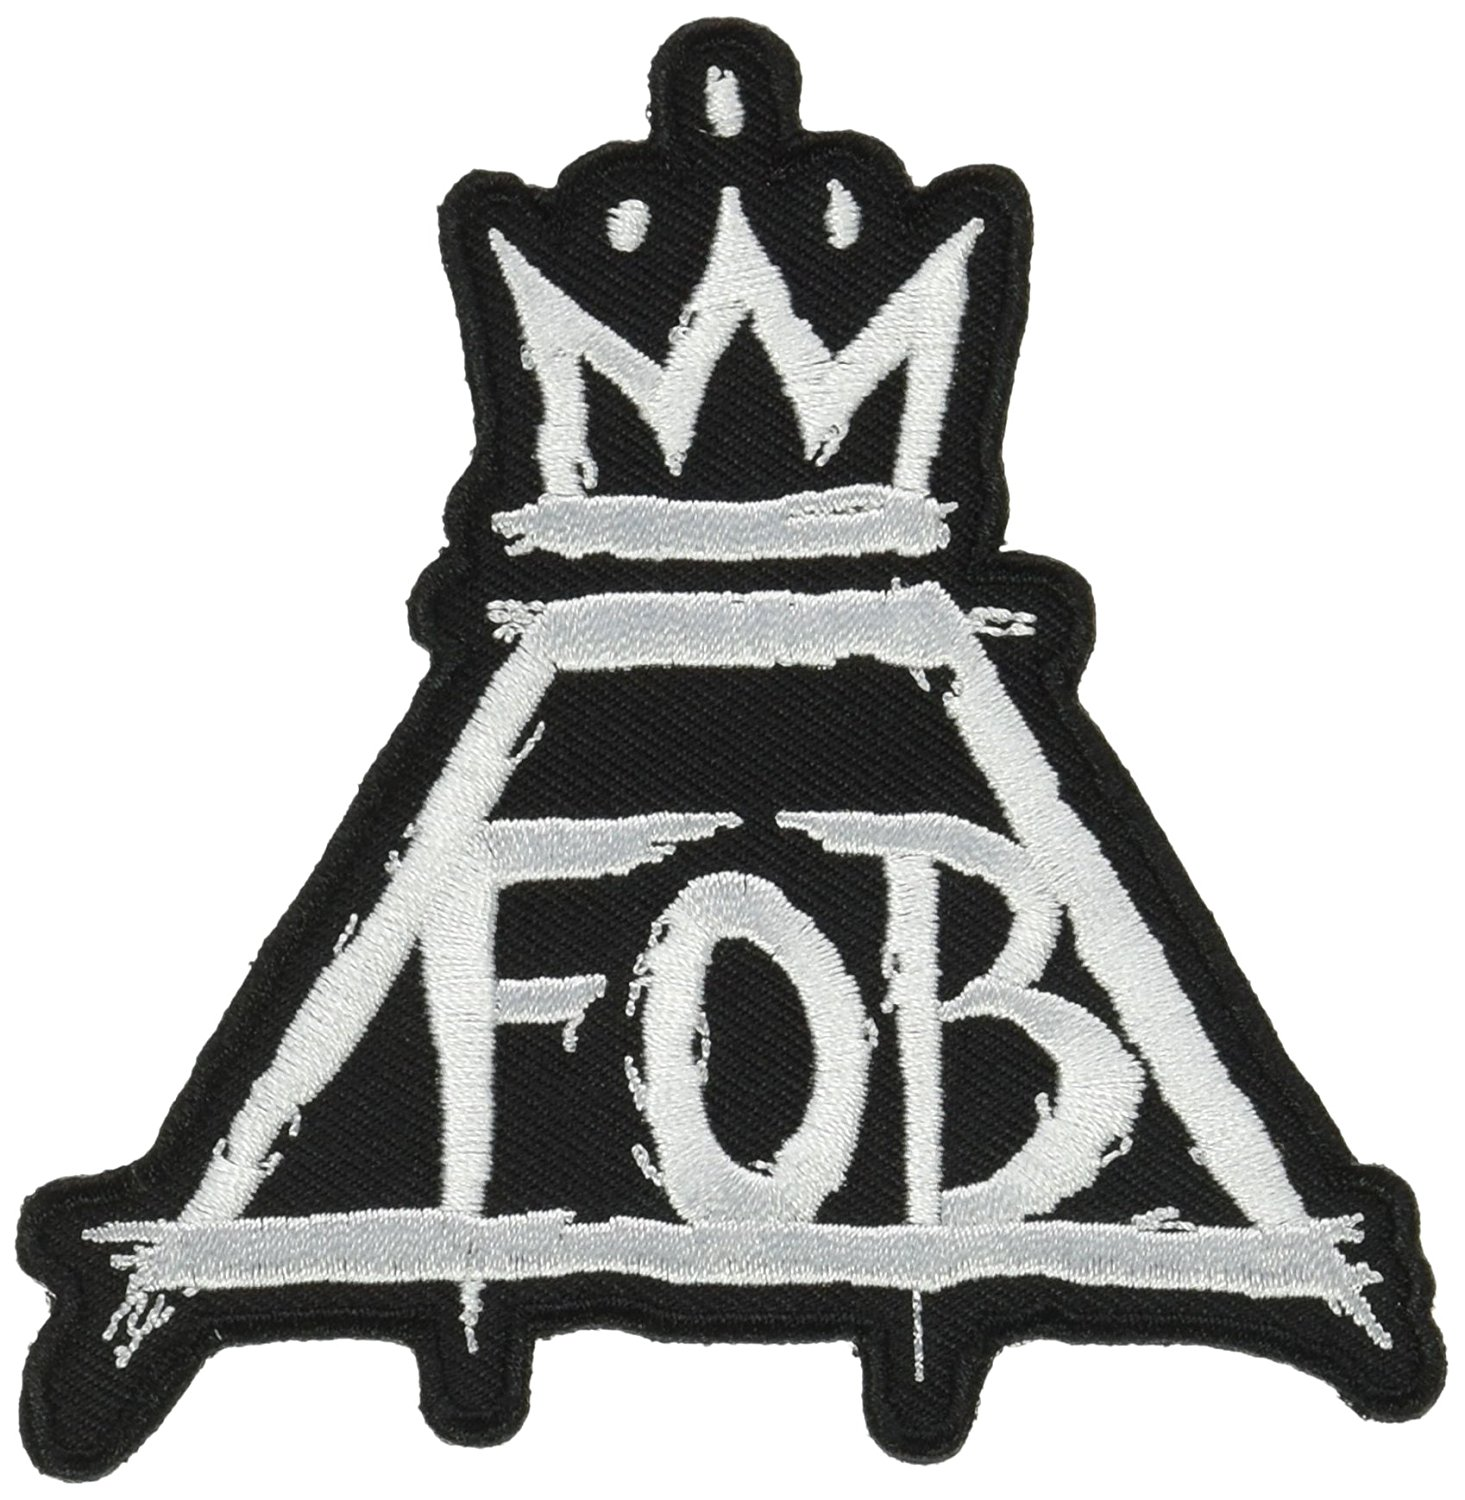 "Application Fall Out Boy Crown 3.5"" logo Iron on Sew Applique Patch"